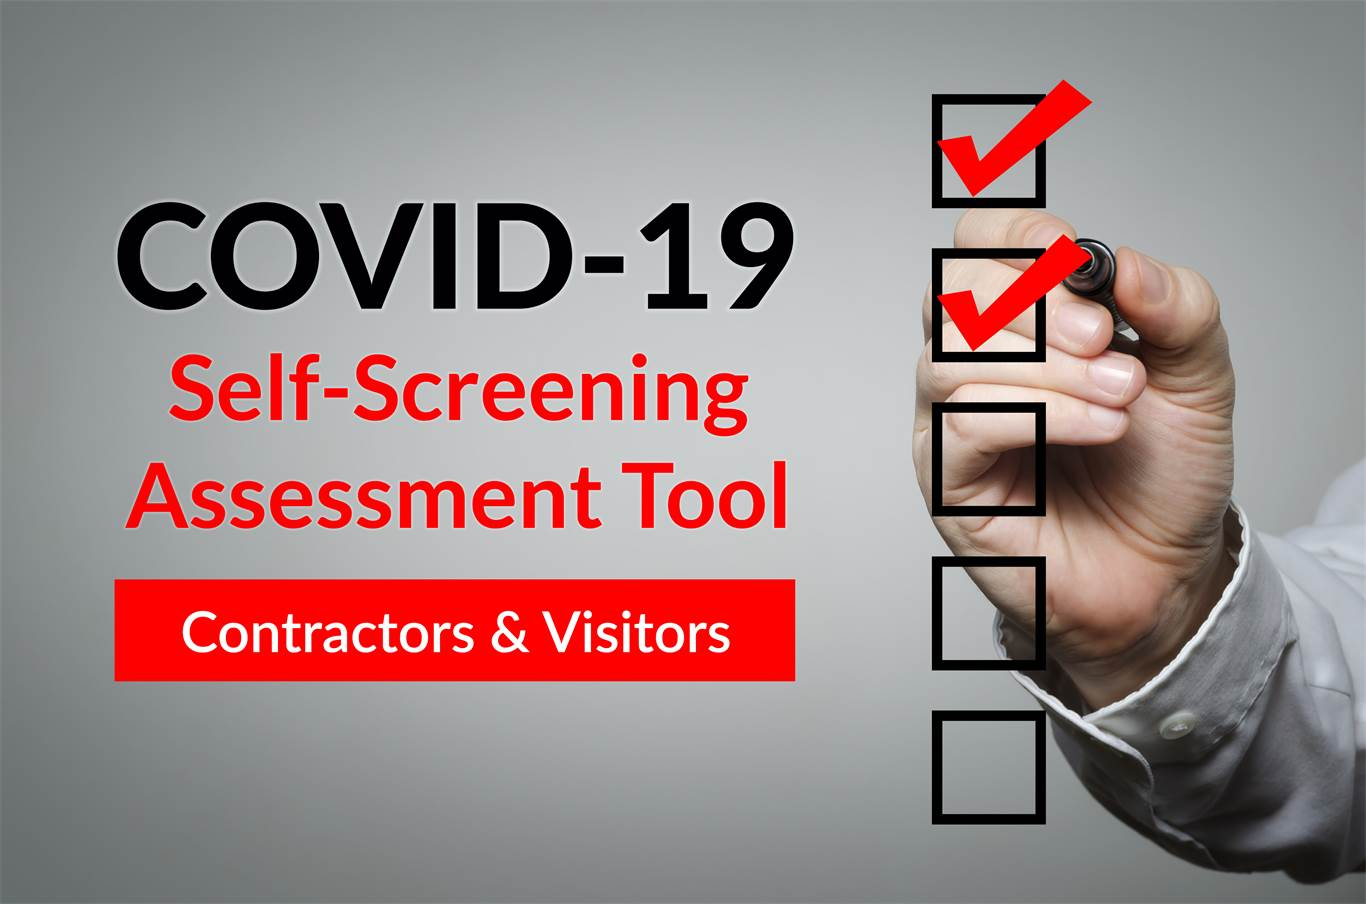 COVID-19 Self-Screening Assessment Tool - Contractors & Visitors